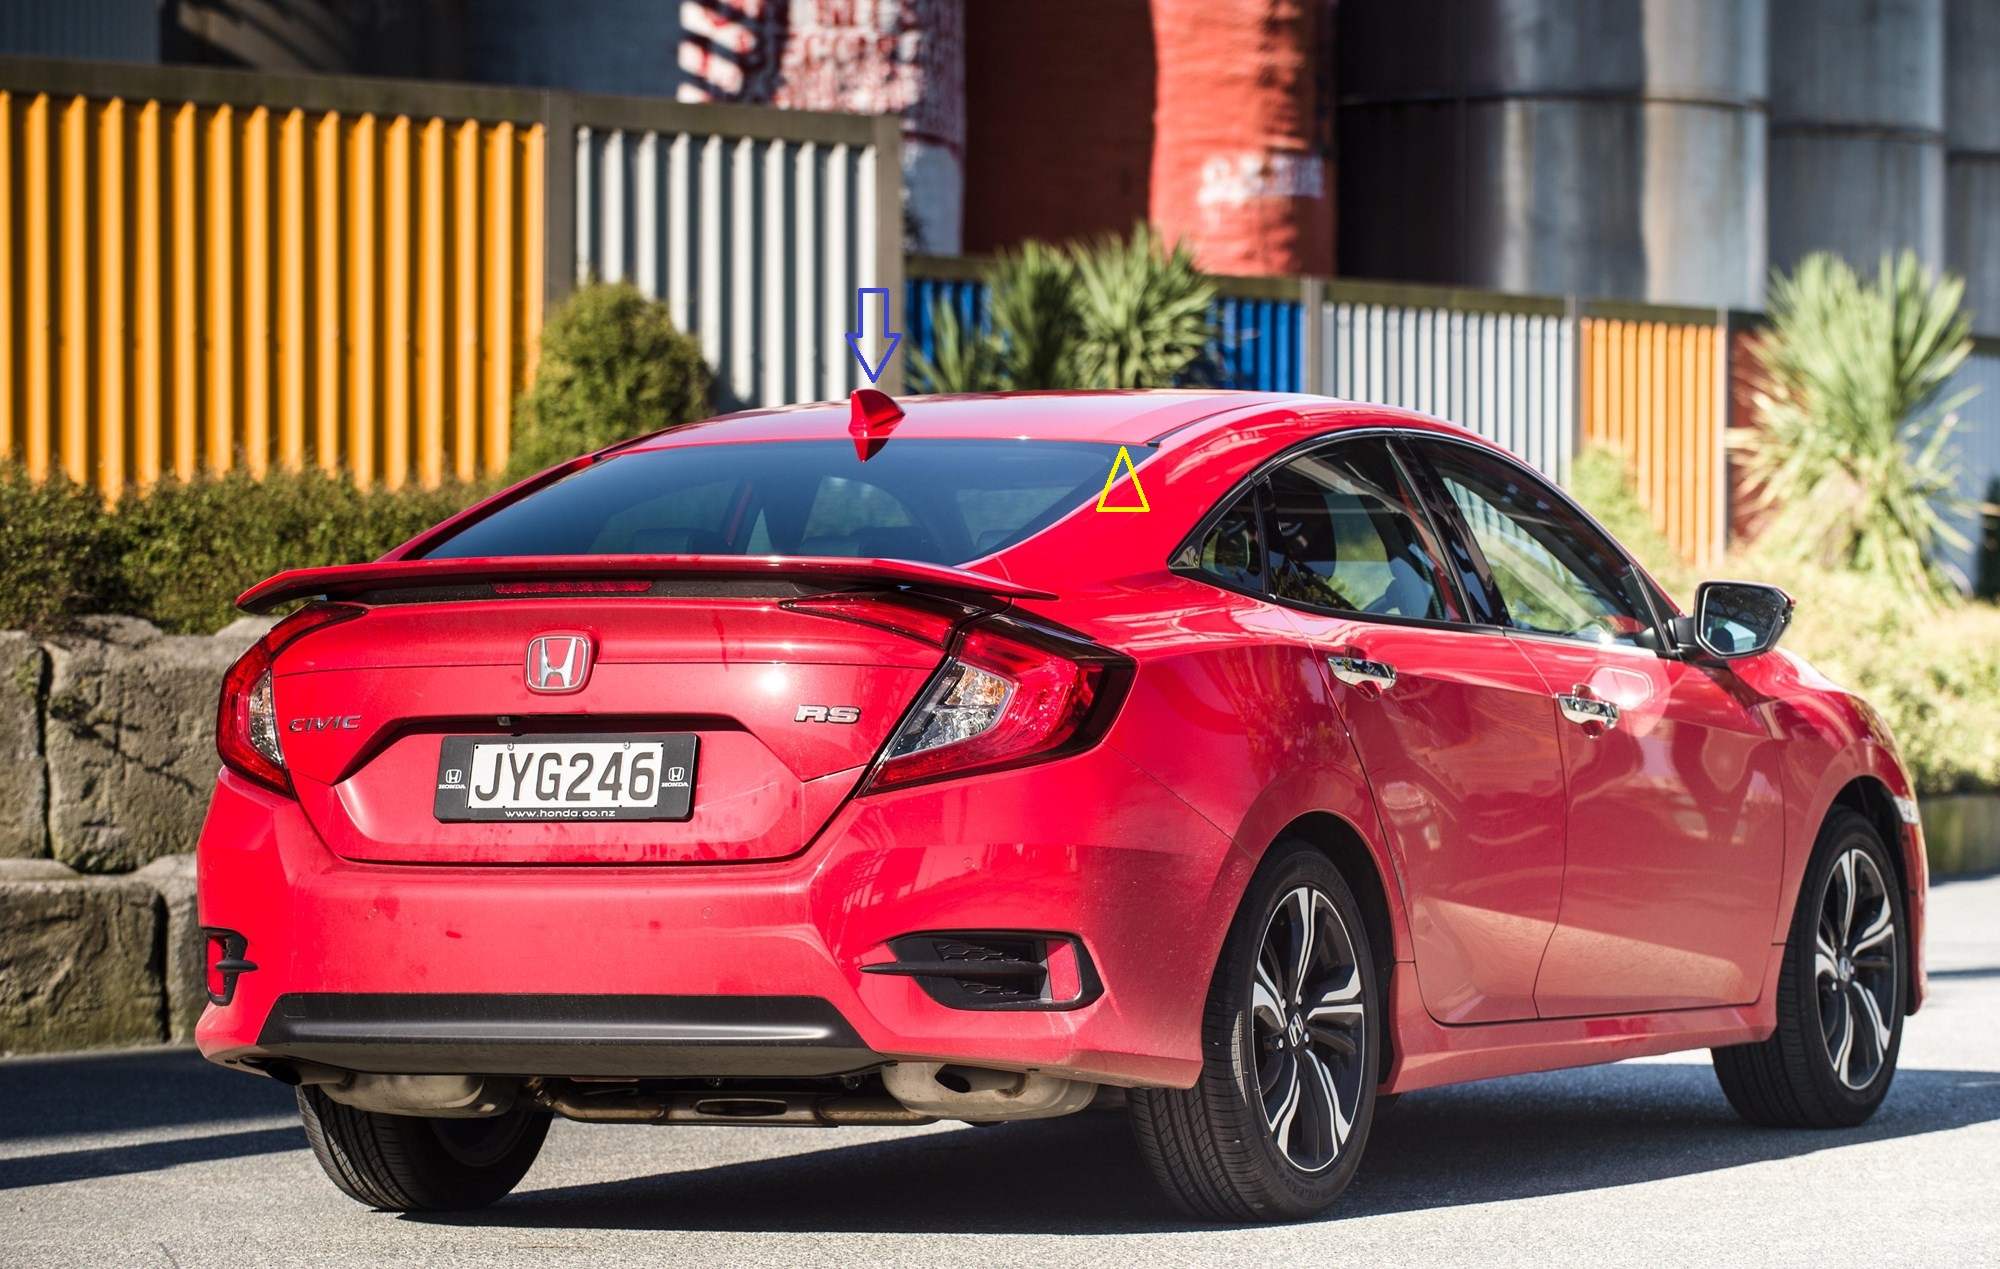 Honda Civic RS, photographed in Auckland for Driven. 2 August 2016 New Zealand Herald Photograph by Ted Baghurst.